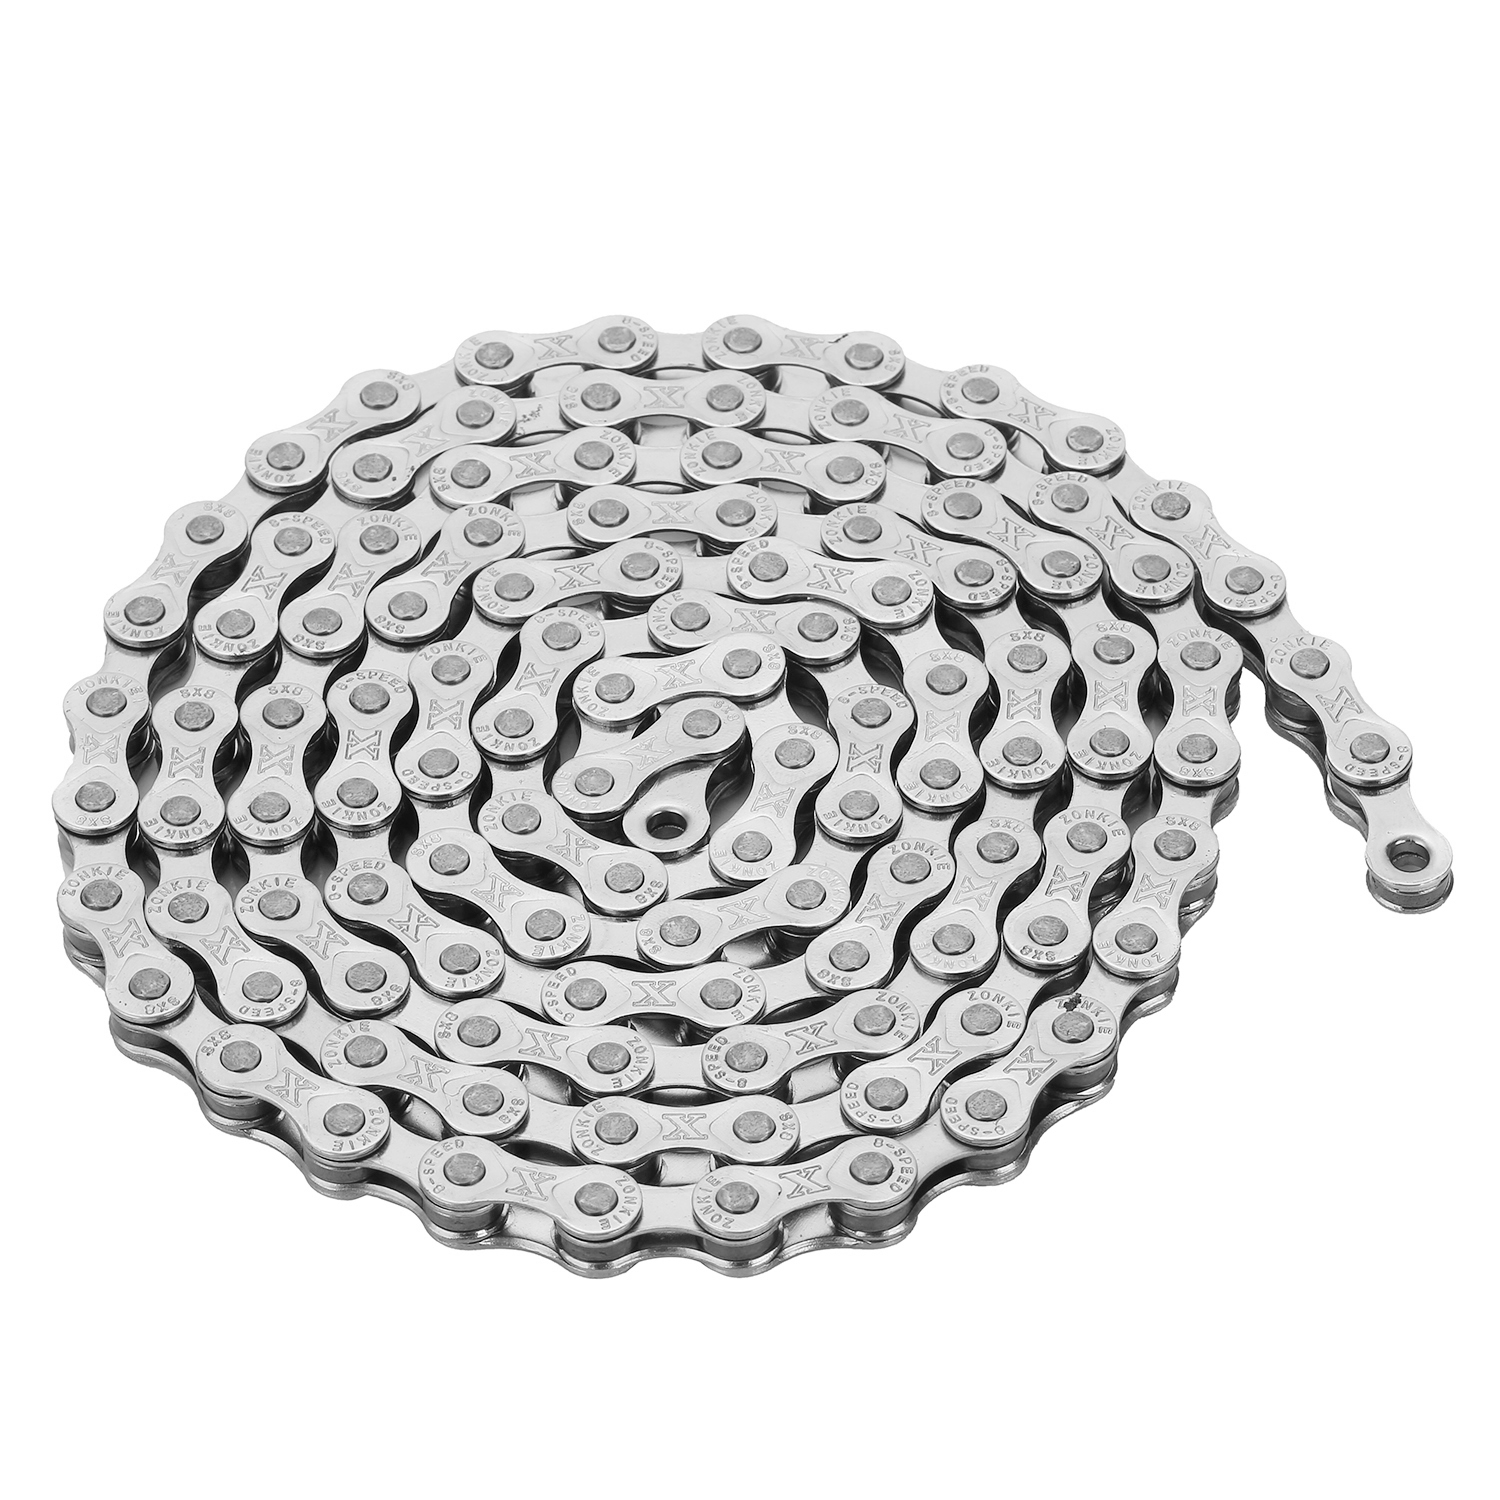 ZK-SX8 5/6/7/8-Speed Bicycle Chain